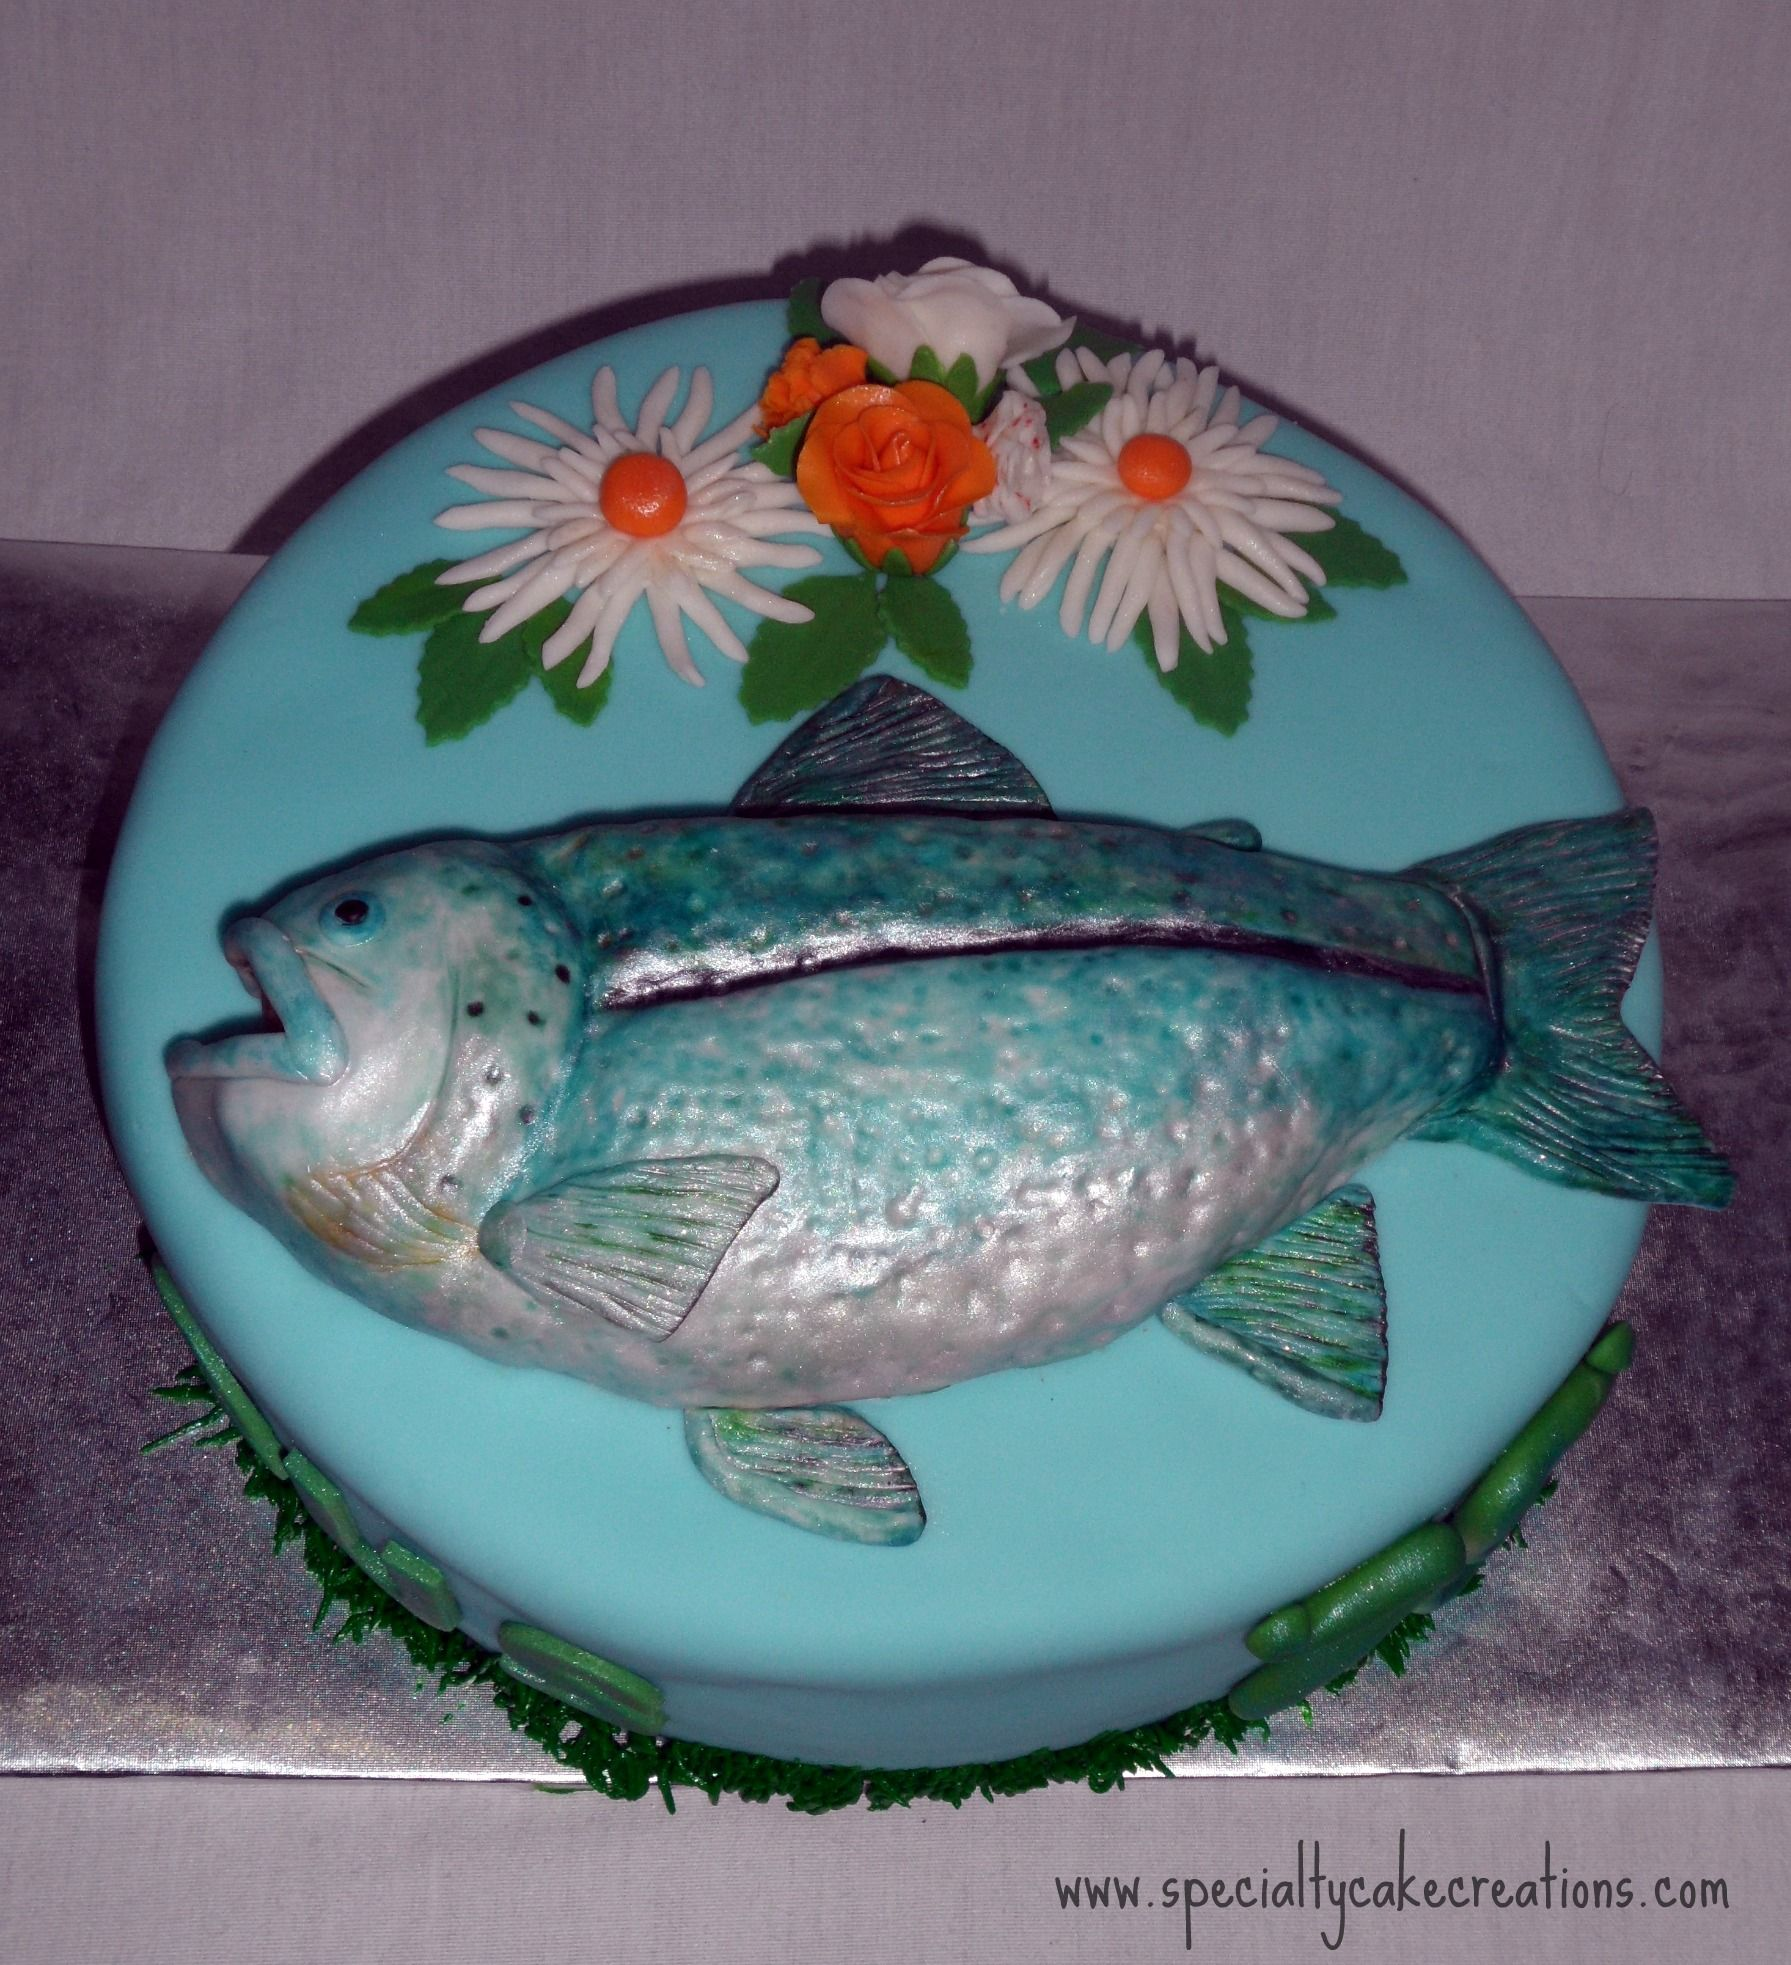 Flower cake designs specialty fish and flowers birthday for Fish cake design